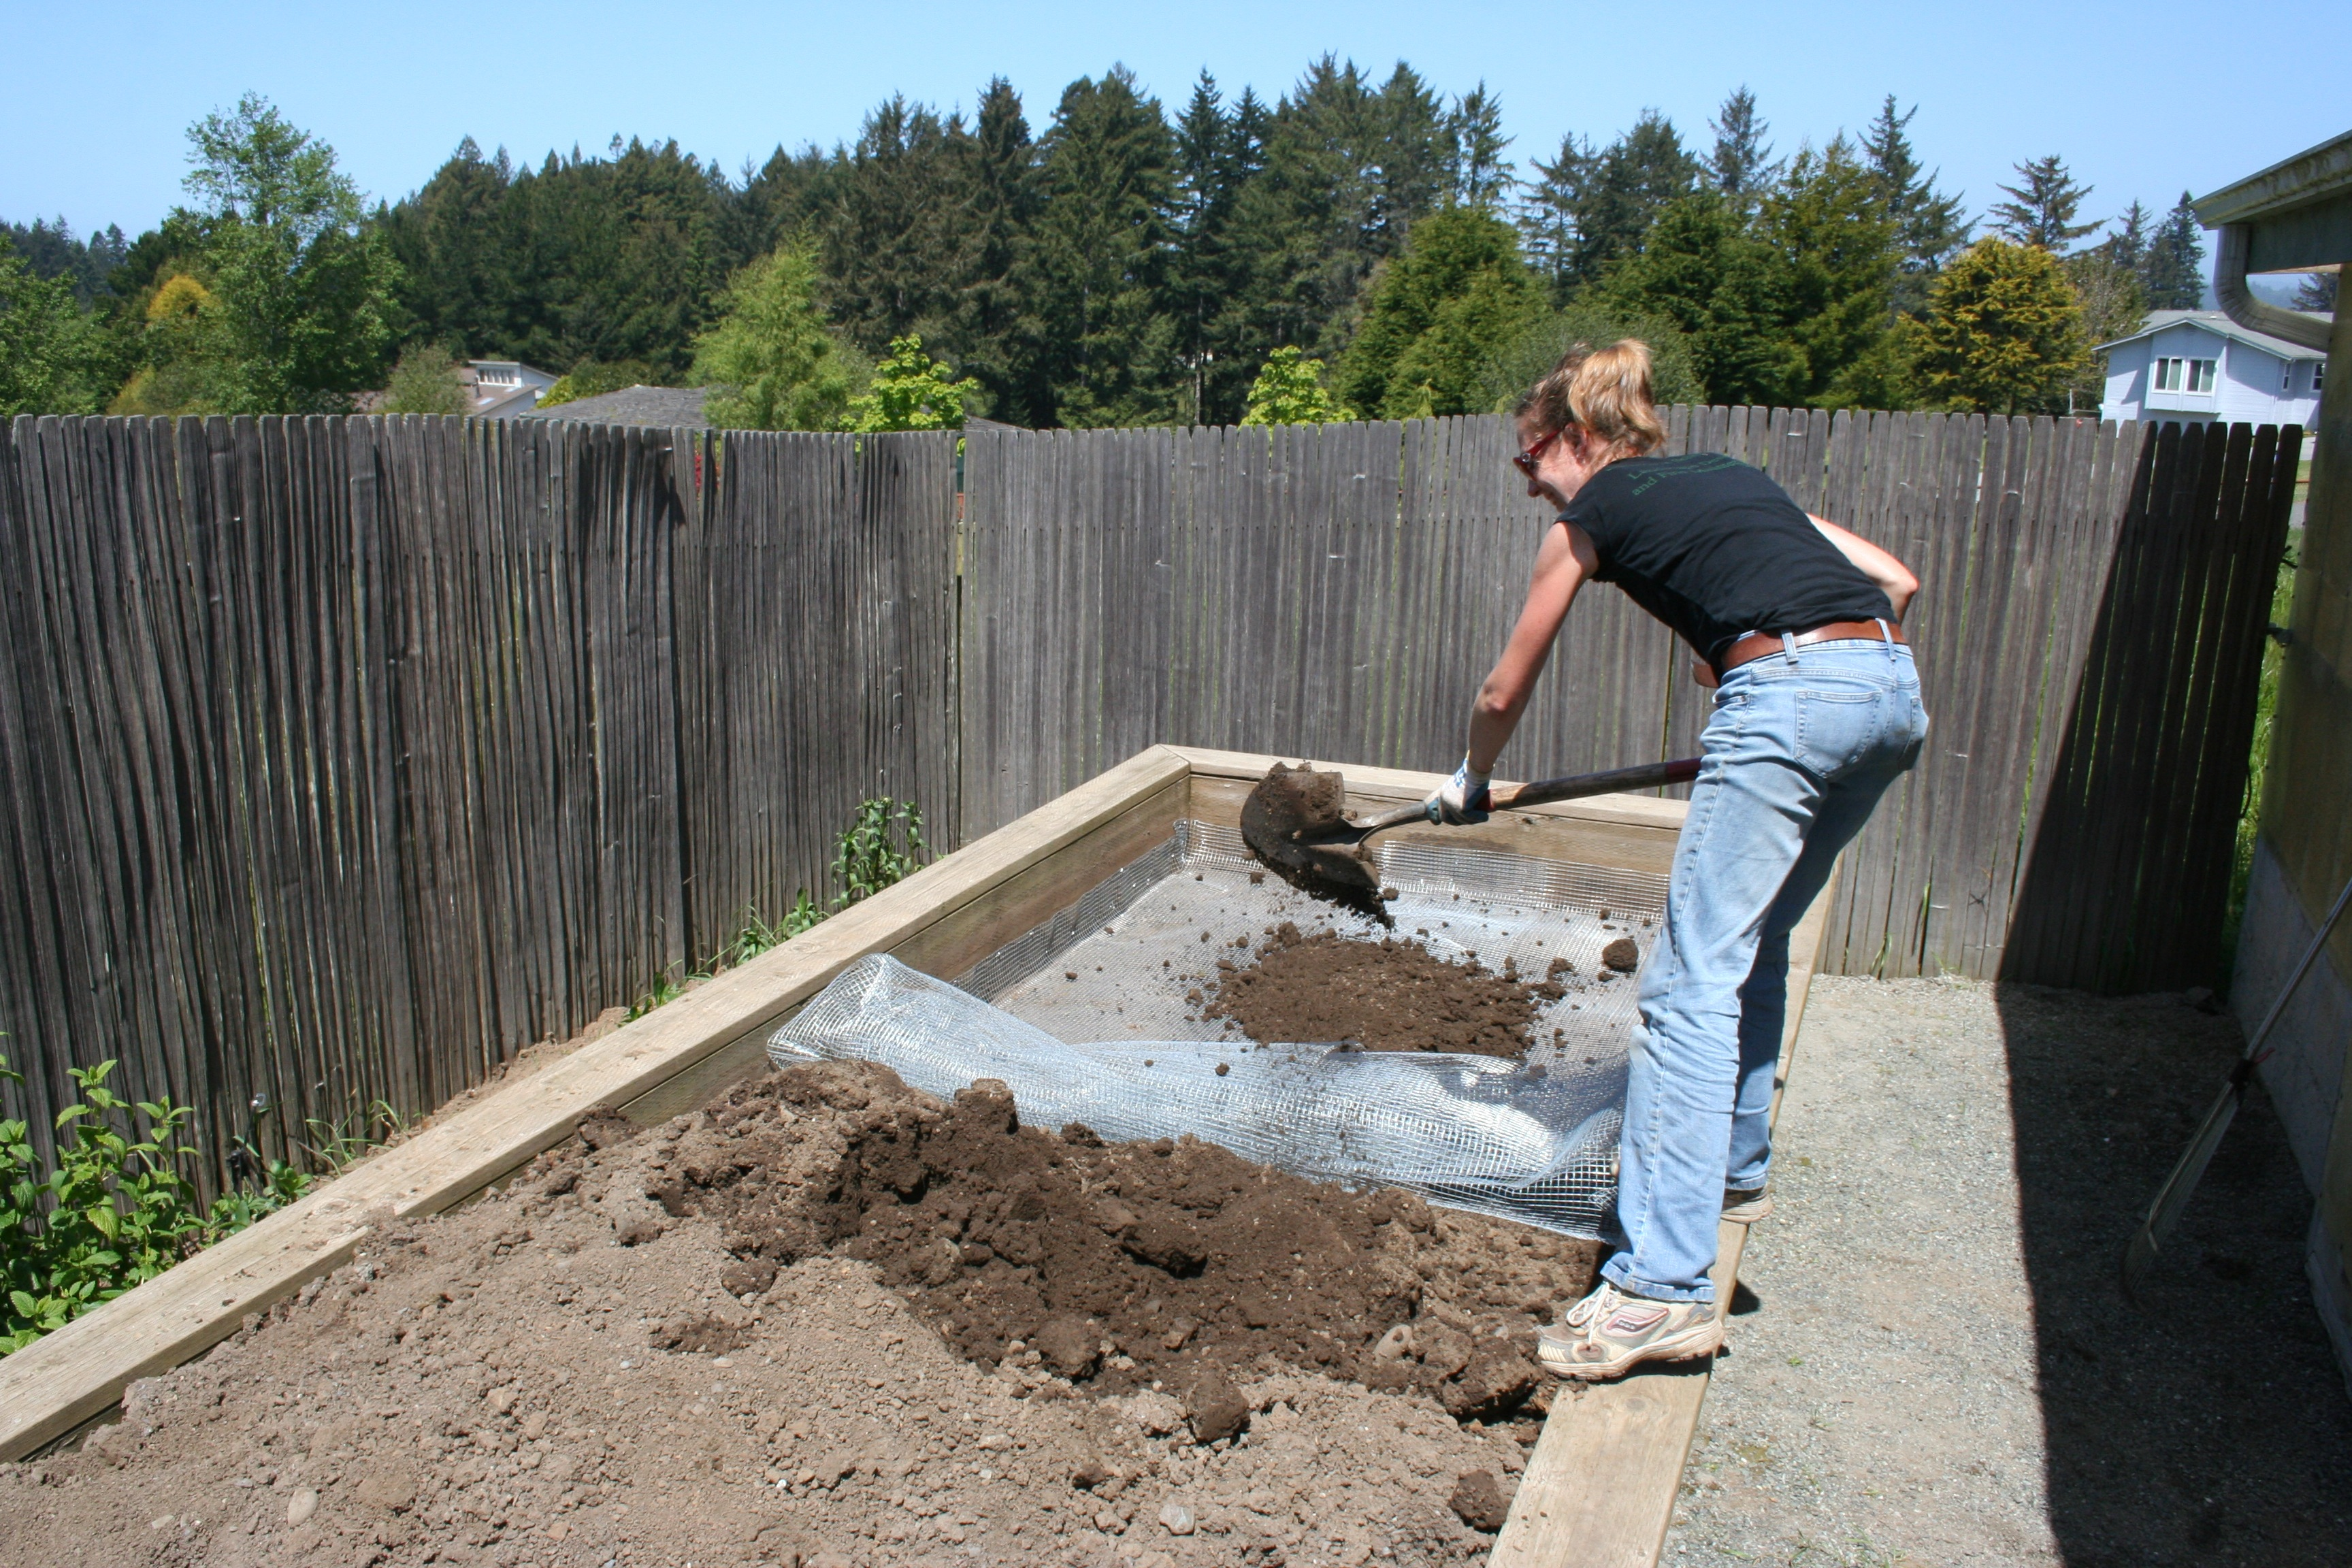 How To Gopher-Proof an Existing Raised Bed (Photo Tutorial